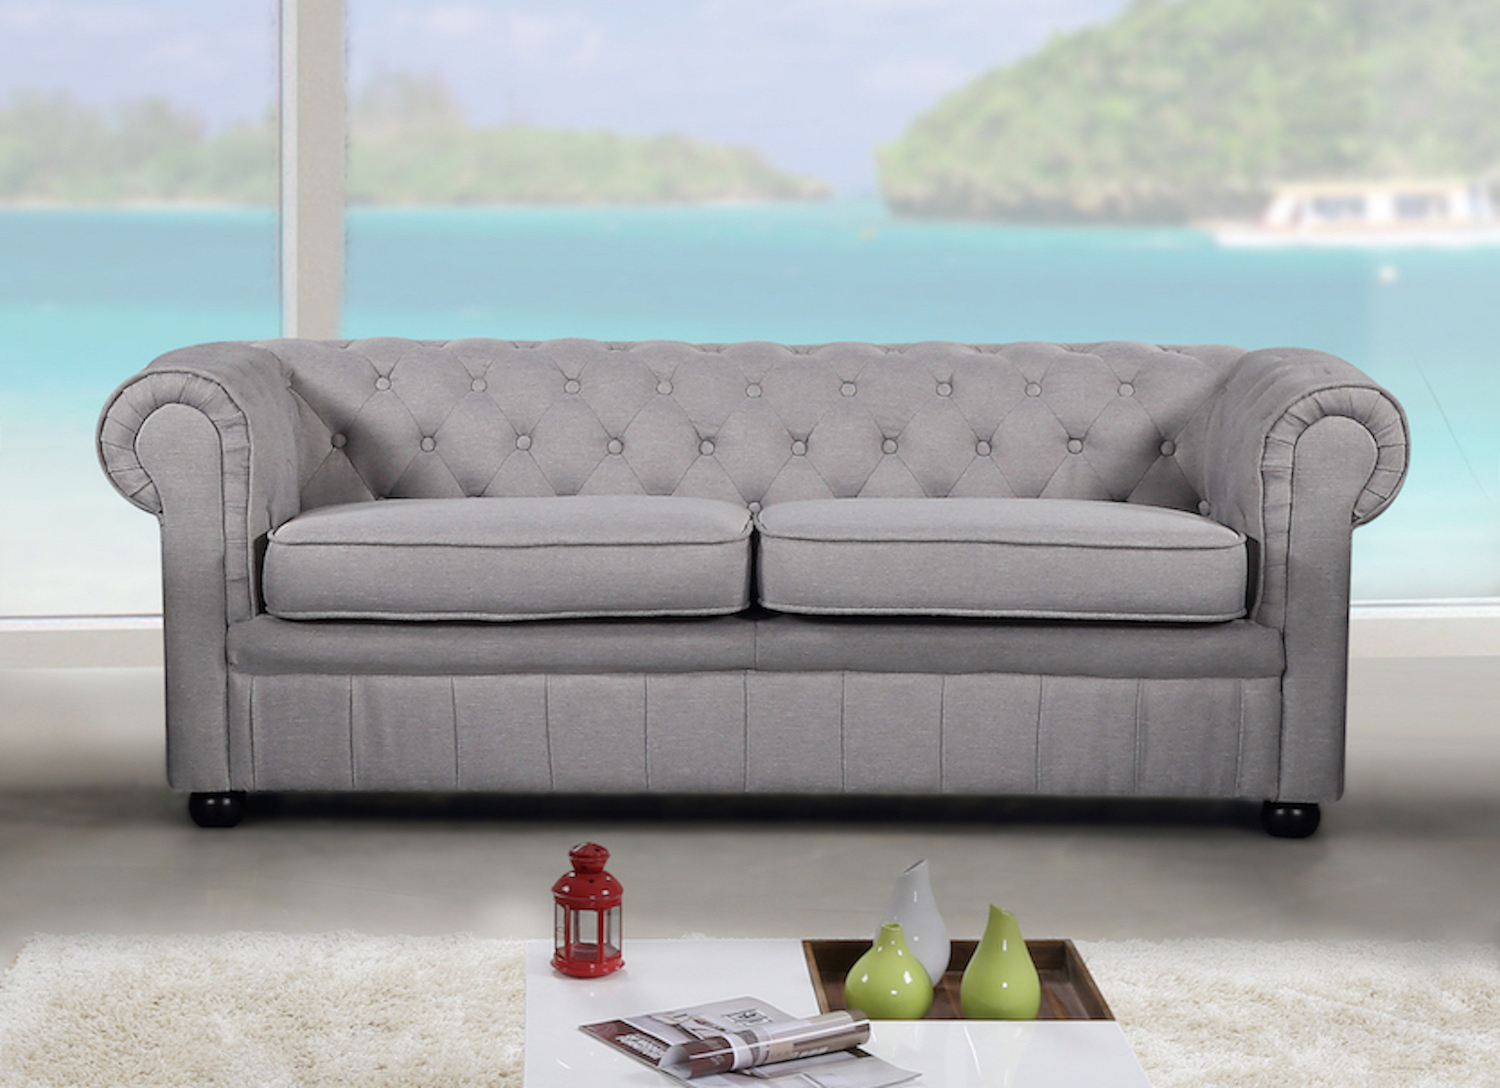 Modern Chesterfield Style Sofa – Light Grey Fabric In Ludovic Contemporary Sofas Light Gray (View 11 of 15)